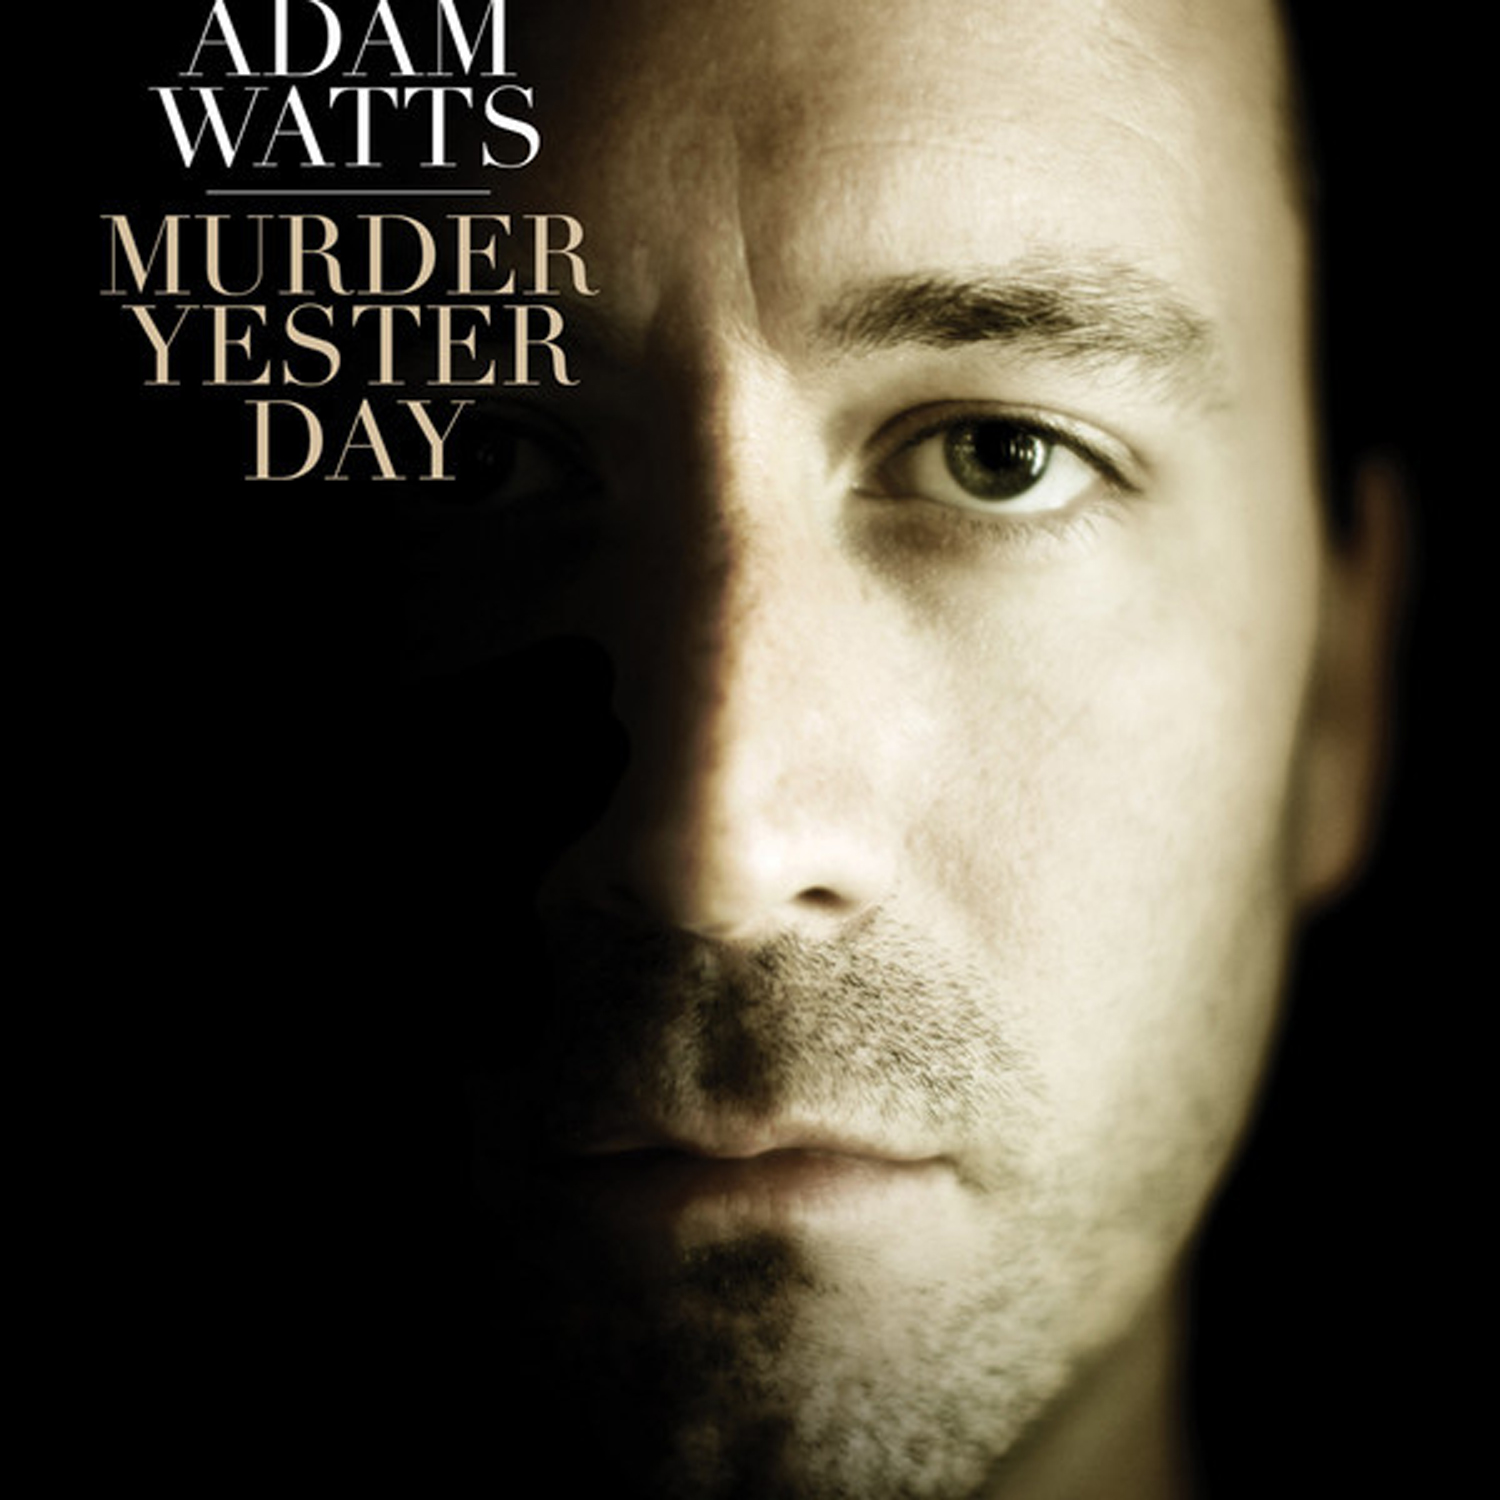 murder yesterday - 2010 -